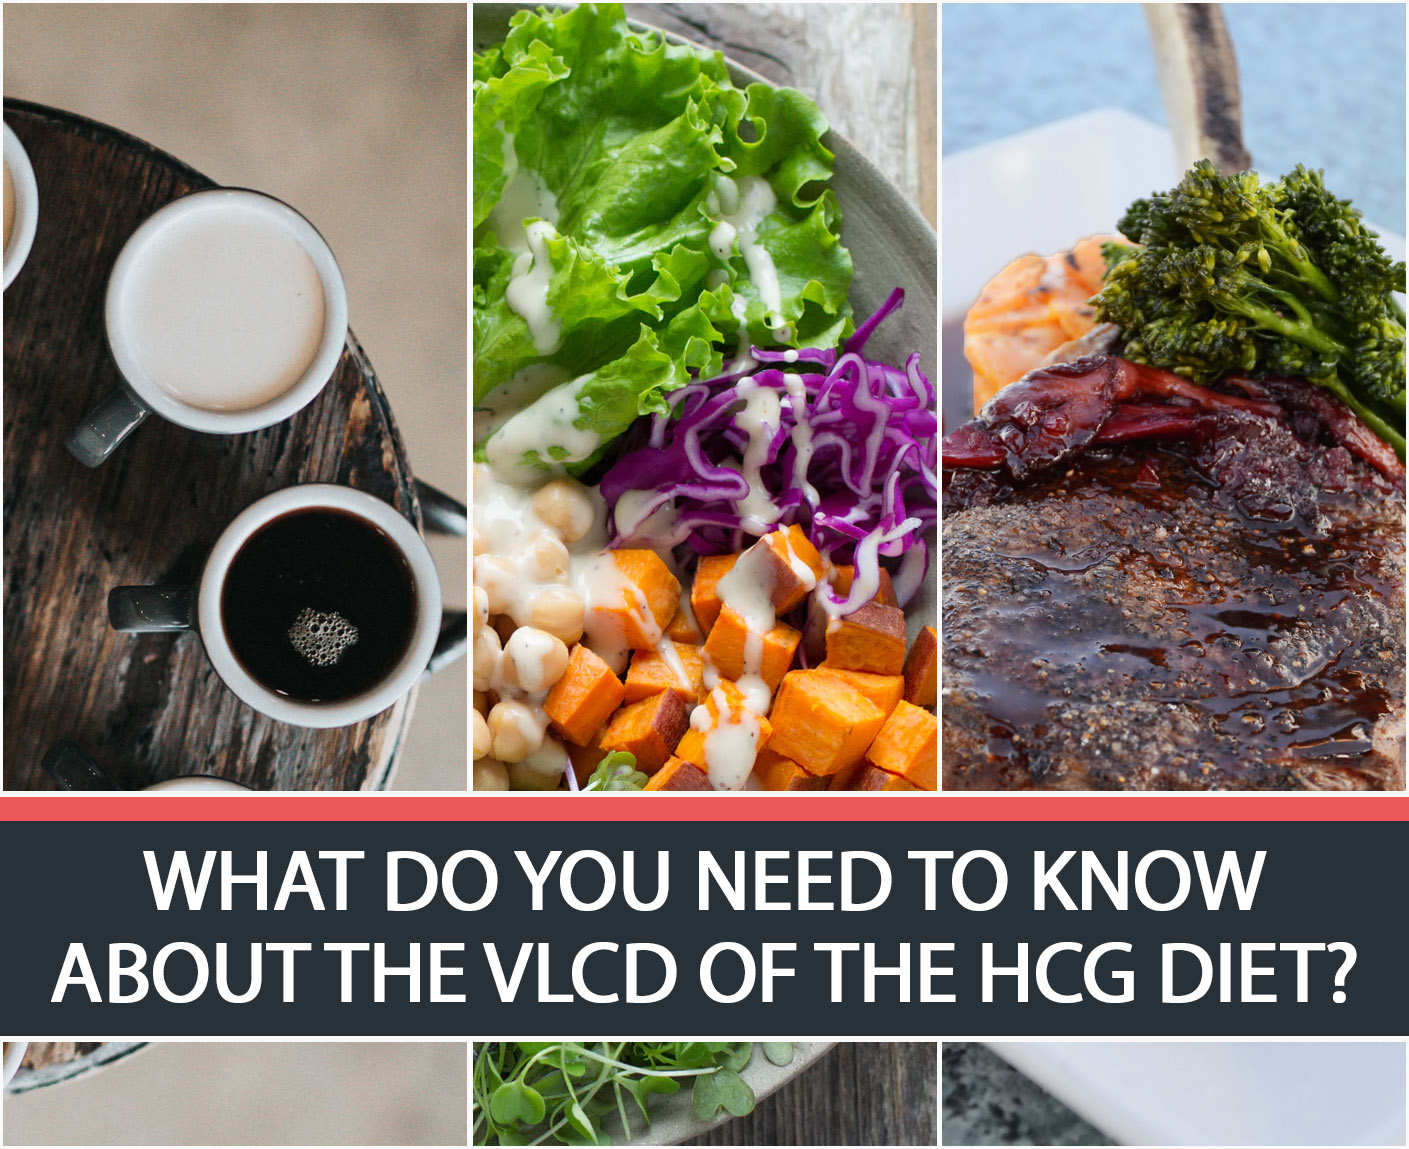 WHAT DO YOU NEED TO KNOW ABOUT THE VLCD OF THE HCG DIET?